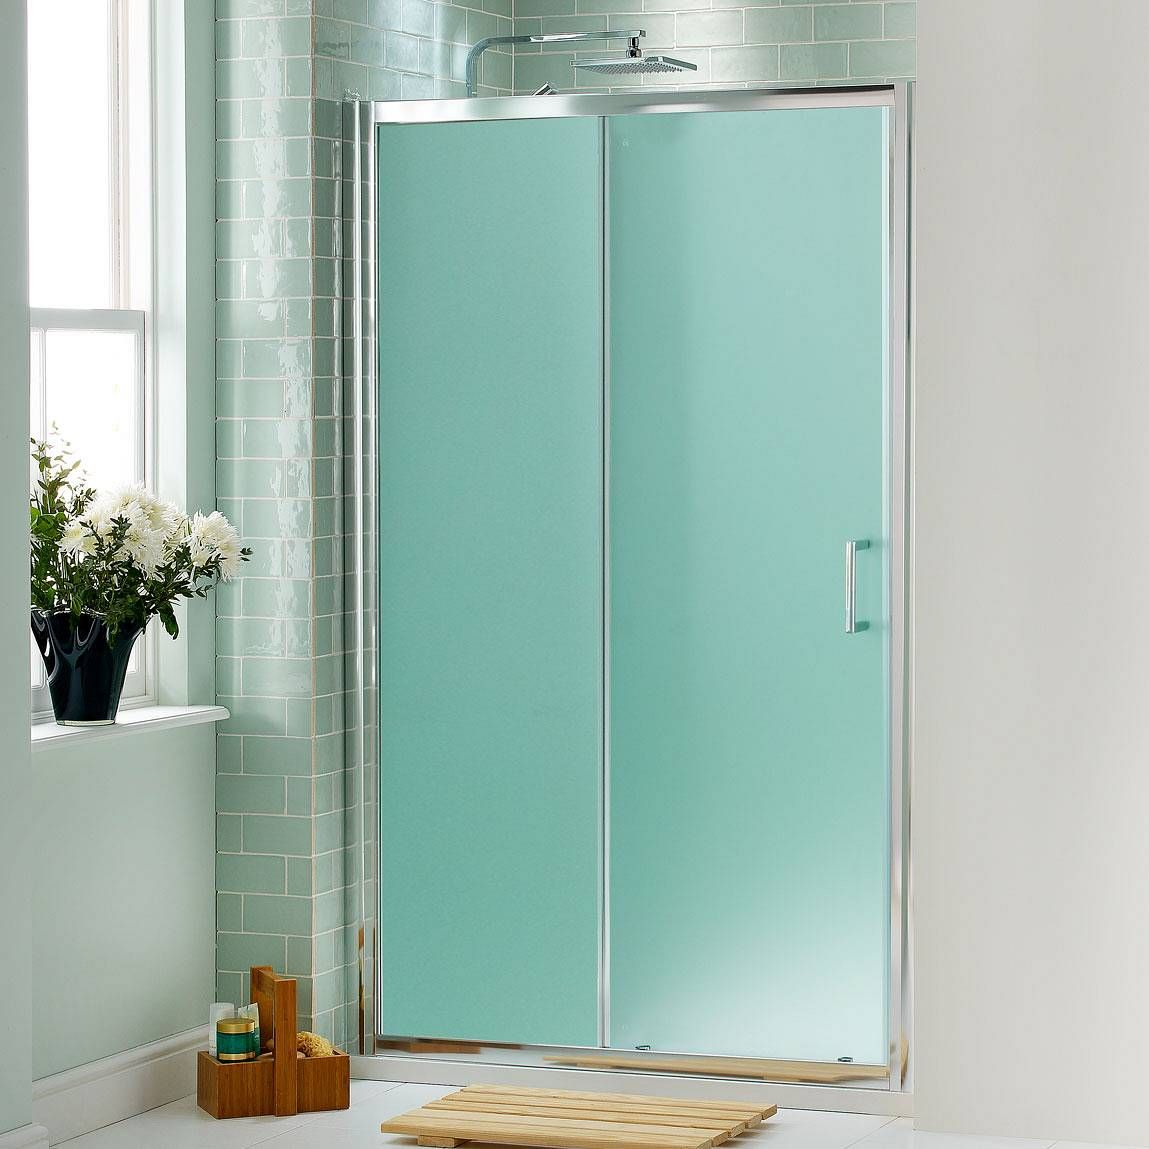 how to add shower doors to a bathtub